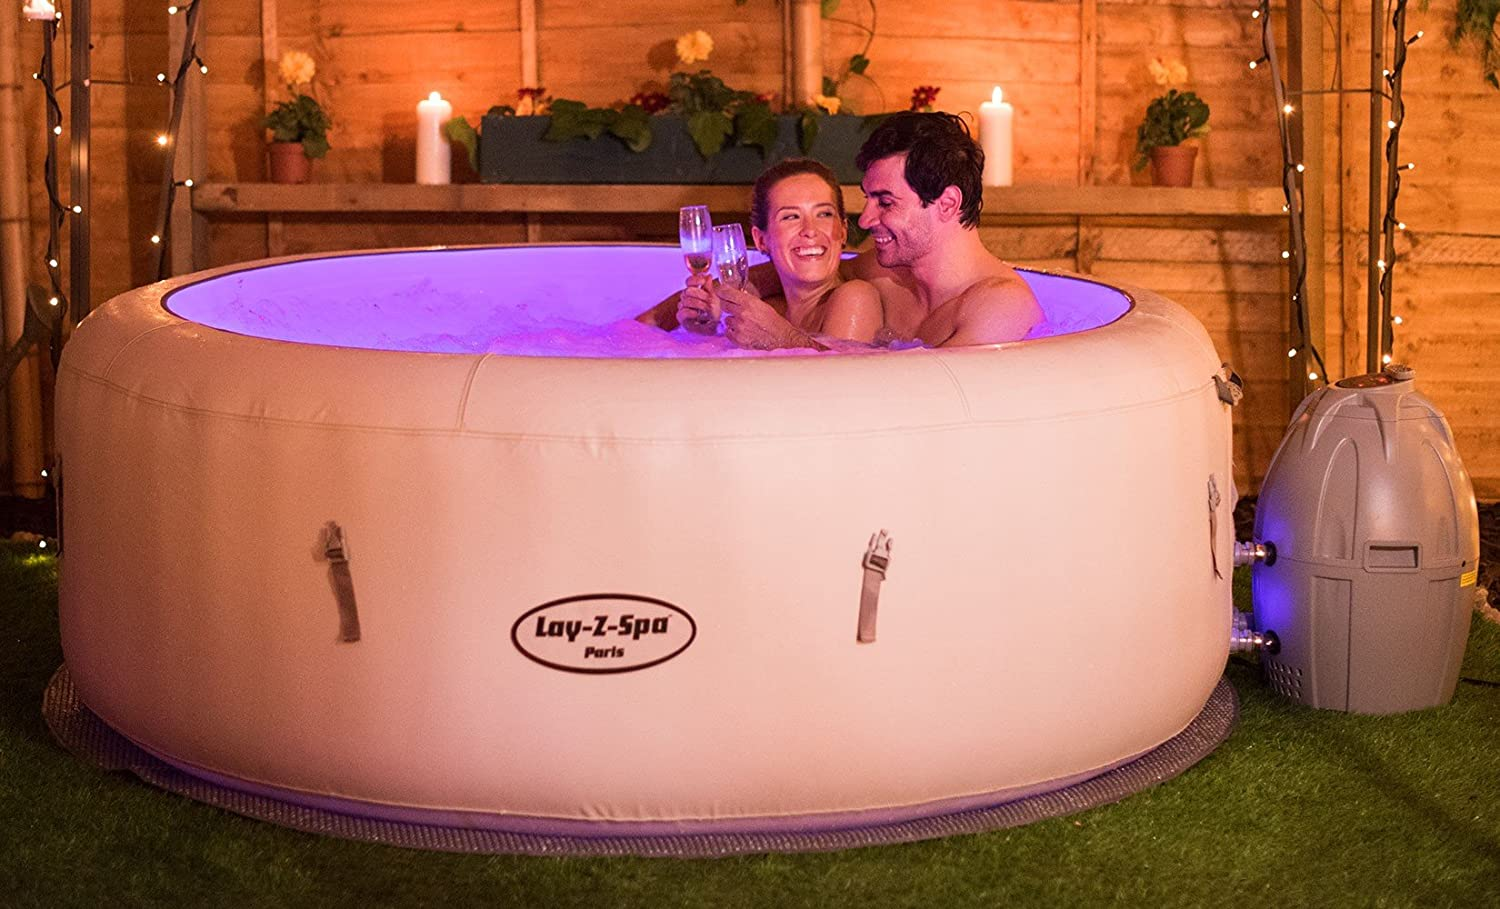 Lay Z Spa Paris Hot Tub With Led Lights Airjet Inflatable 4 6